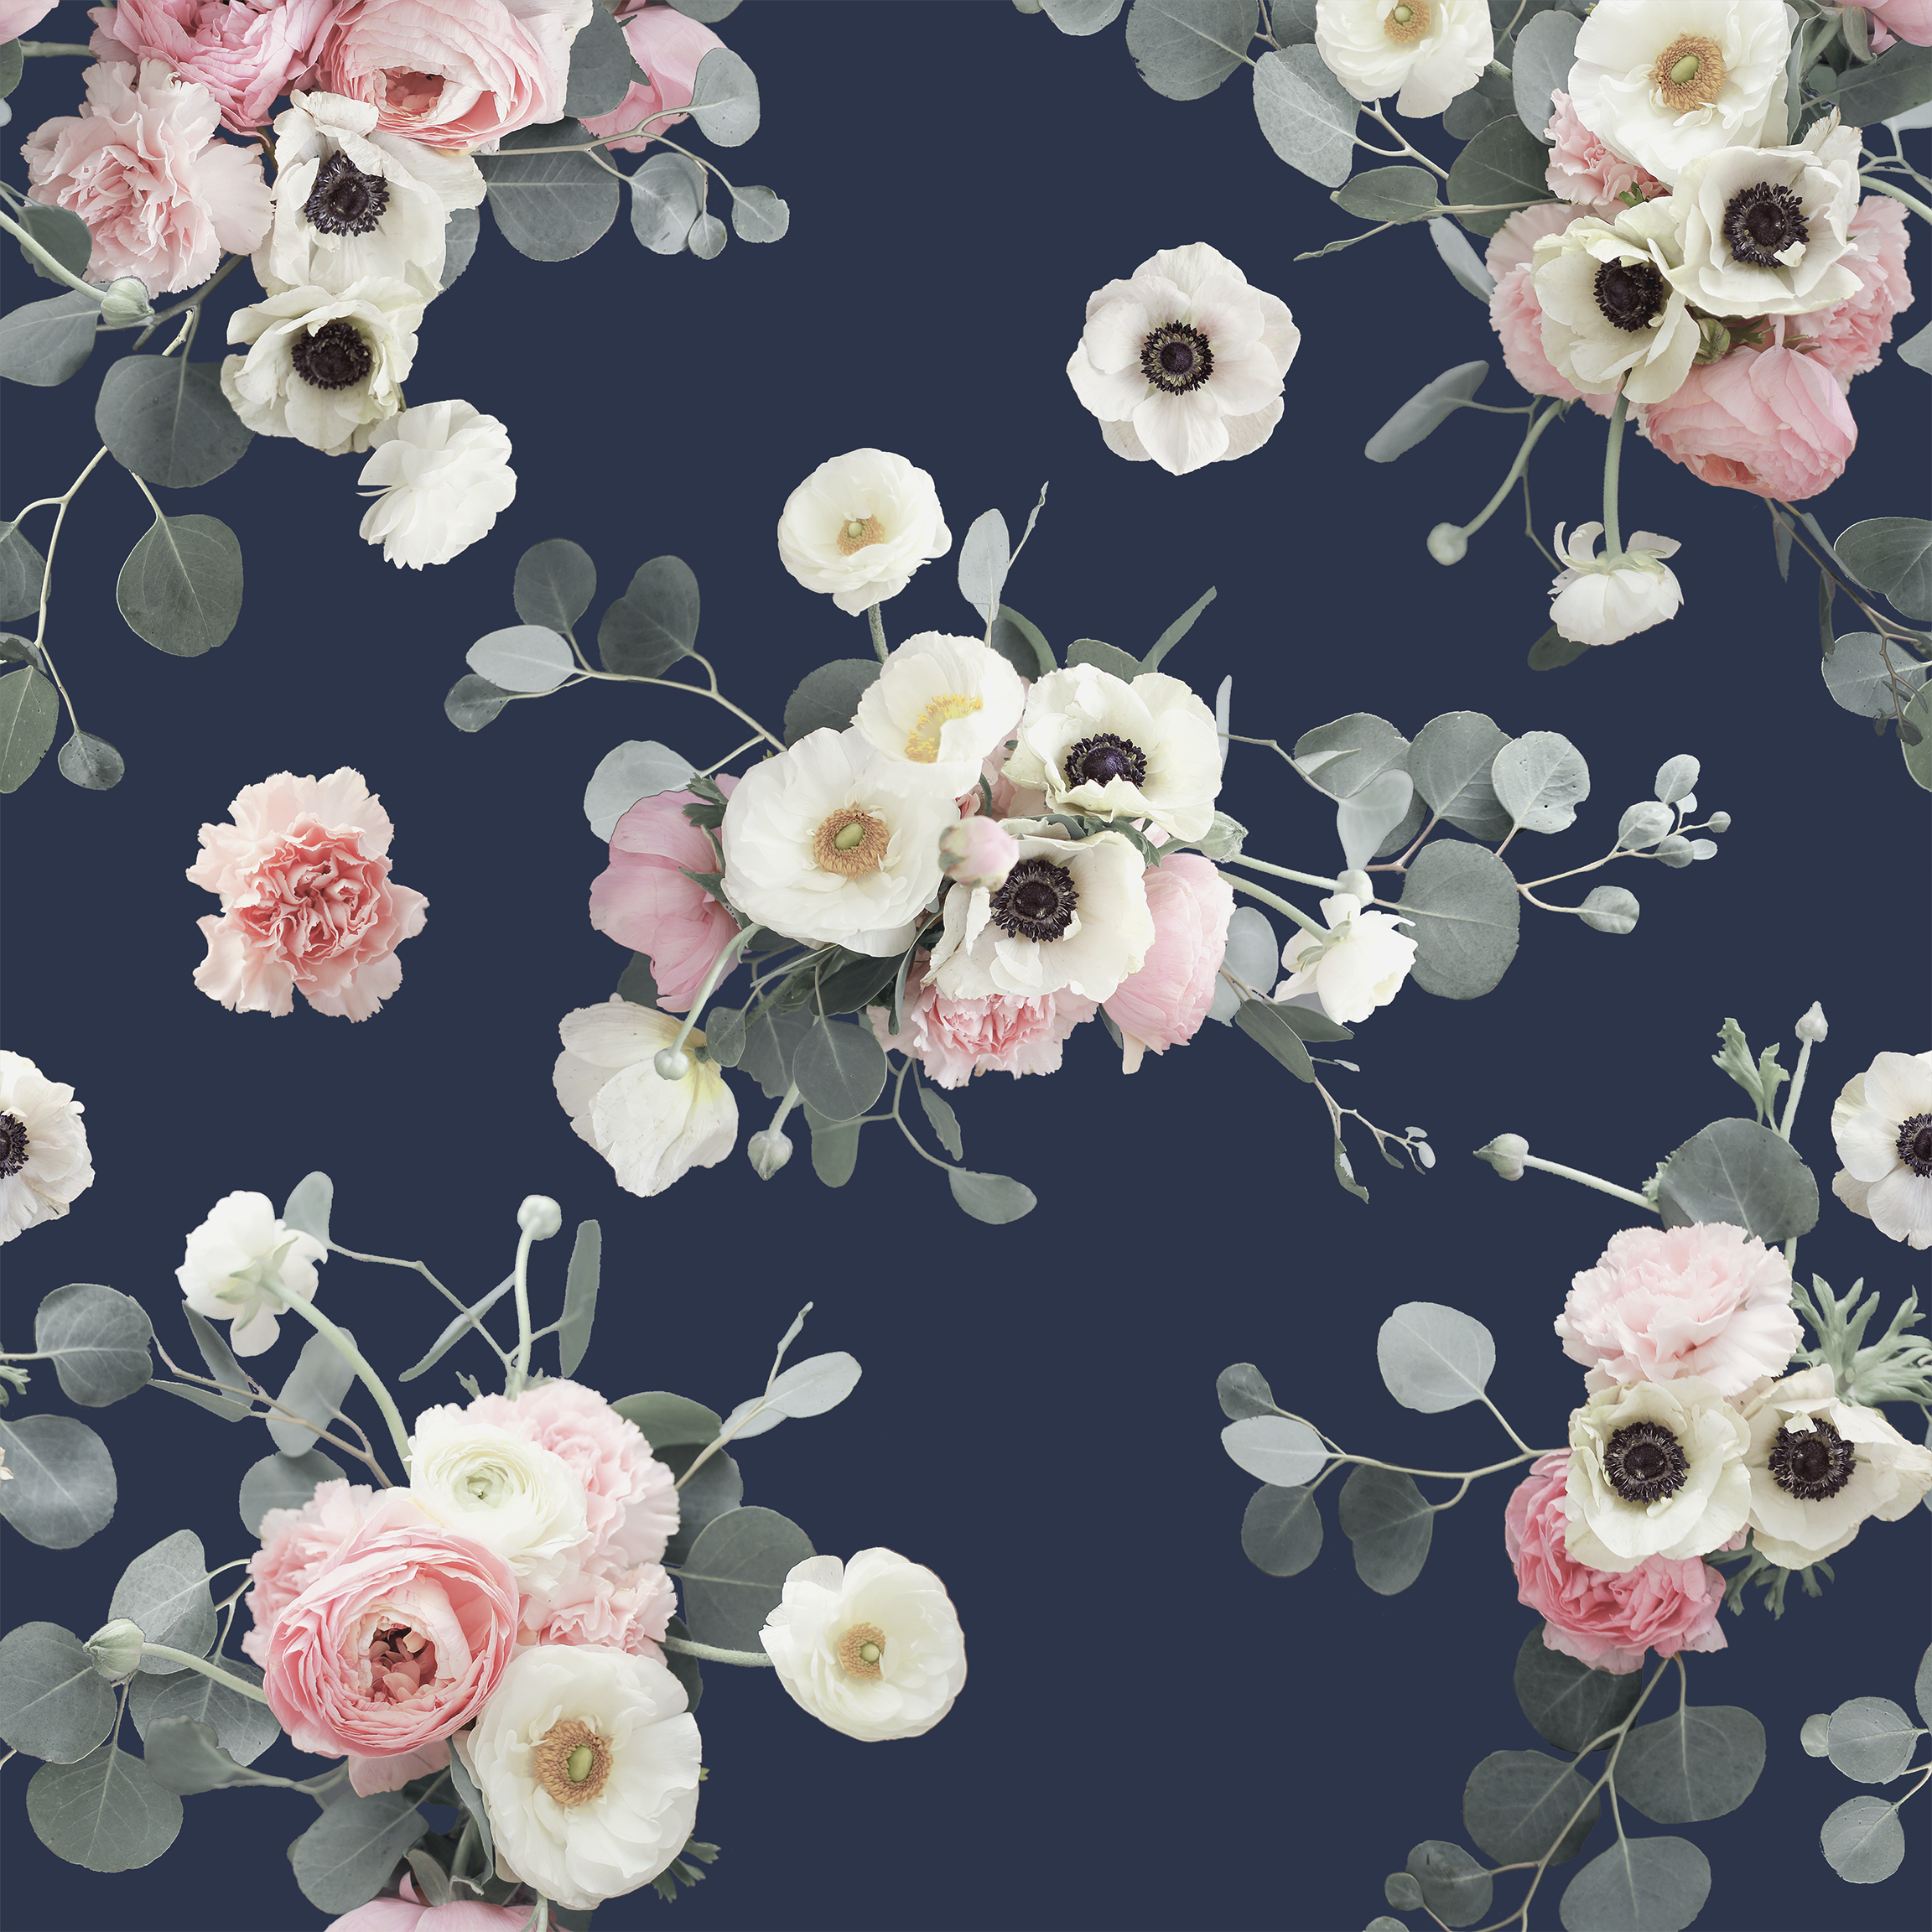 Peel-and-Stick Removable Wallpaper Midnight Floral Blue Navy Flower Garden